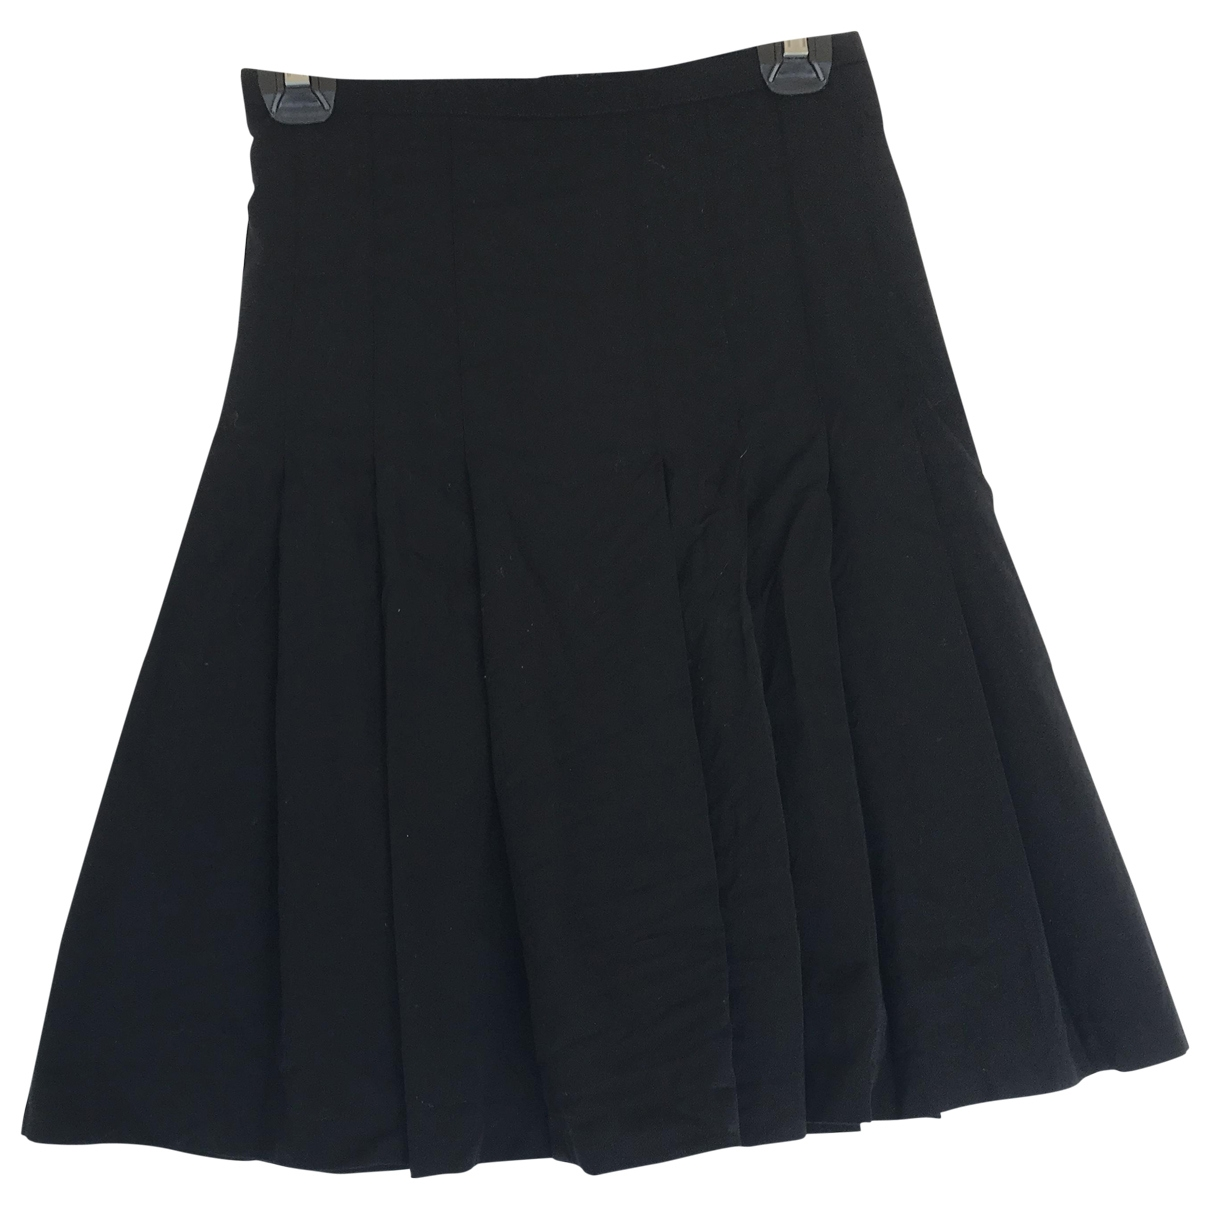 Agnès B. \N Black Wool skirt for Women 36 FR